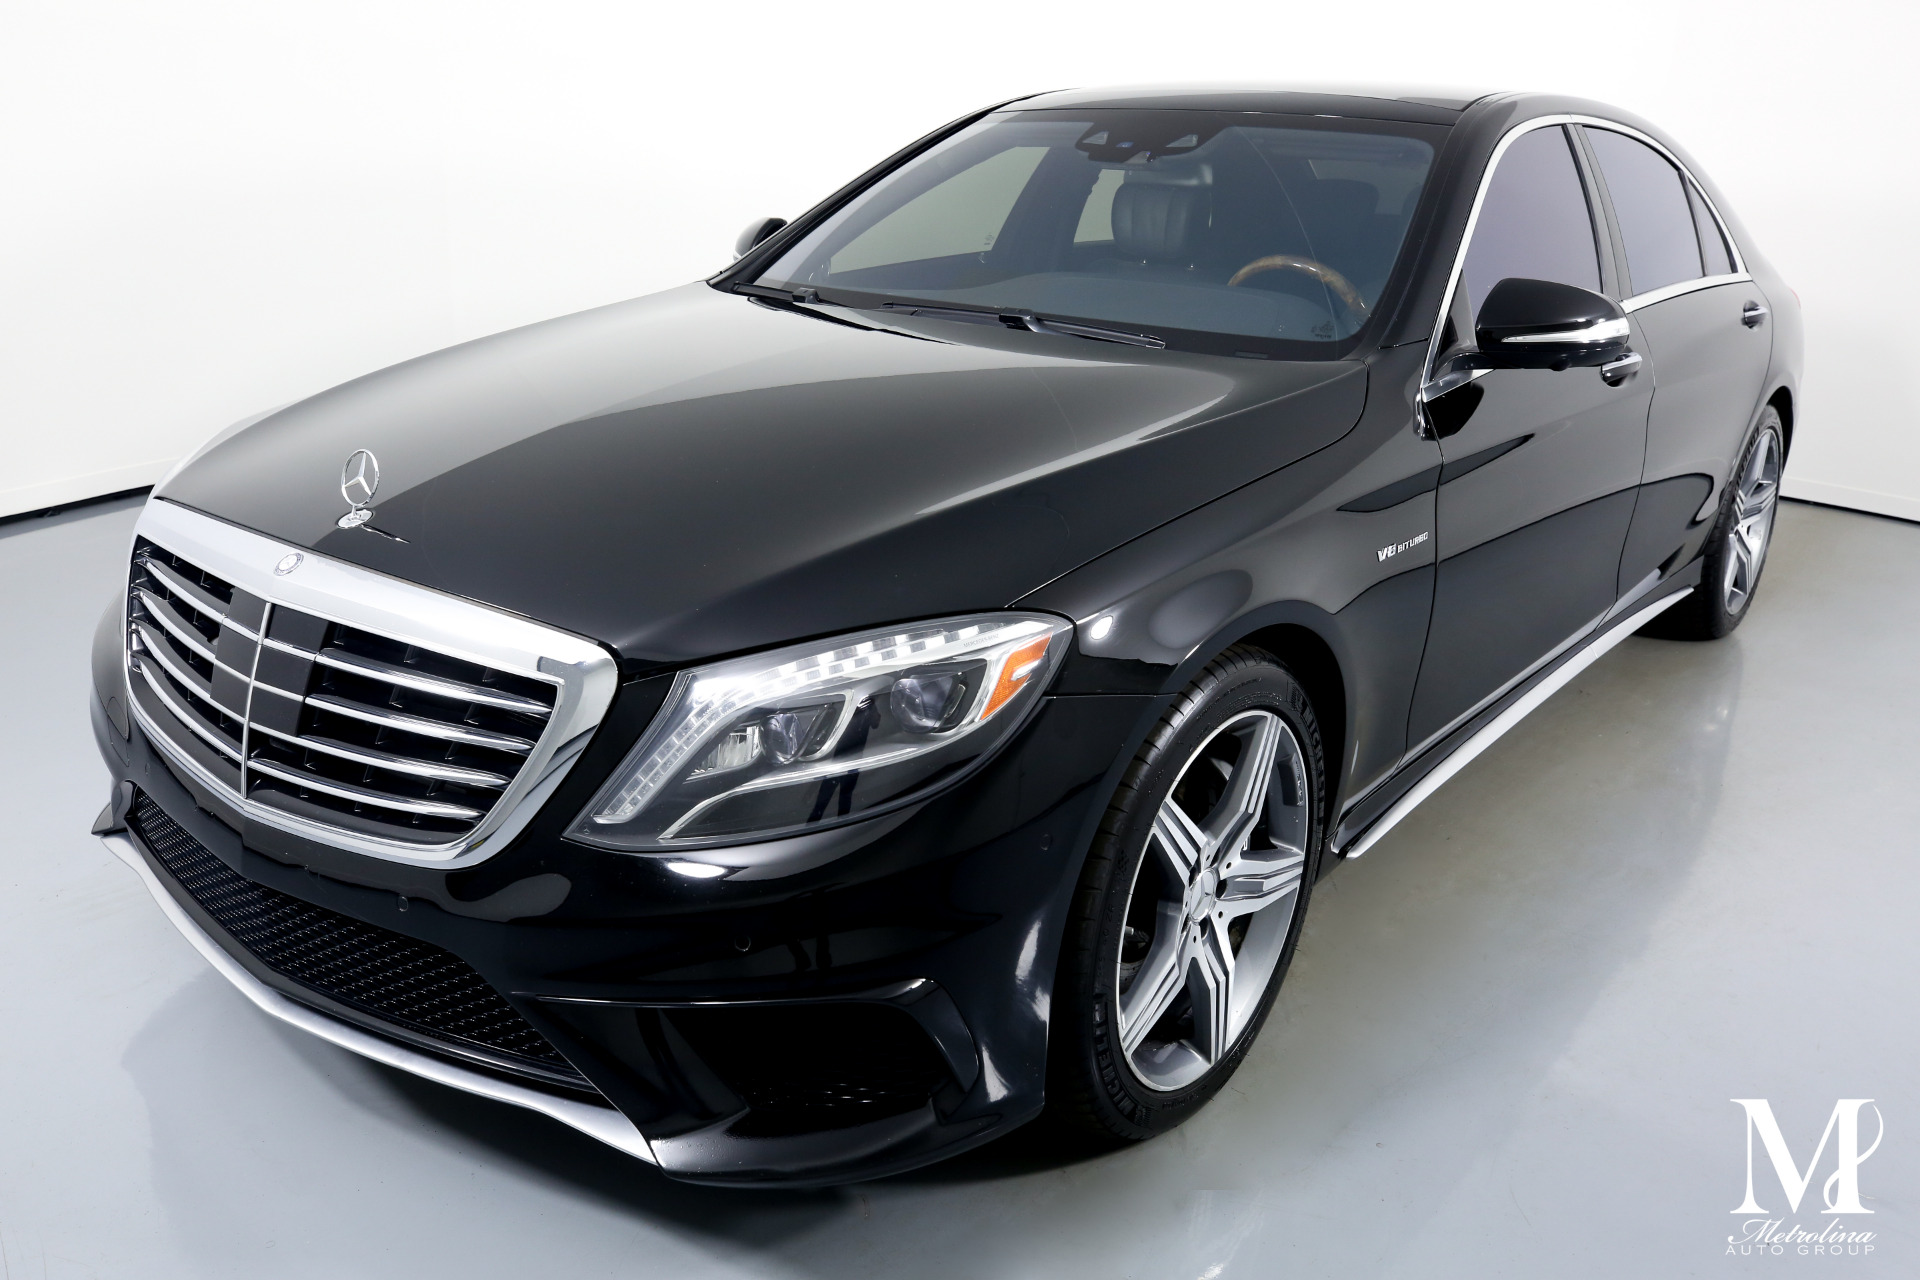 Used 2014 Mercedes-Benz S-Class S 63 AMG for sale Sold at Metrolina Auto Group in Charlotte NC 28217 - 4